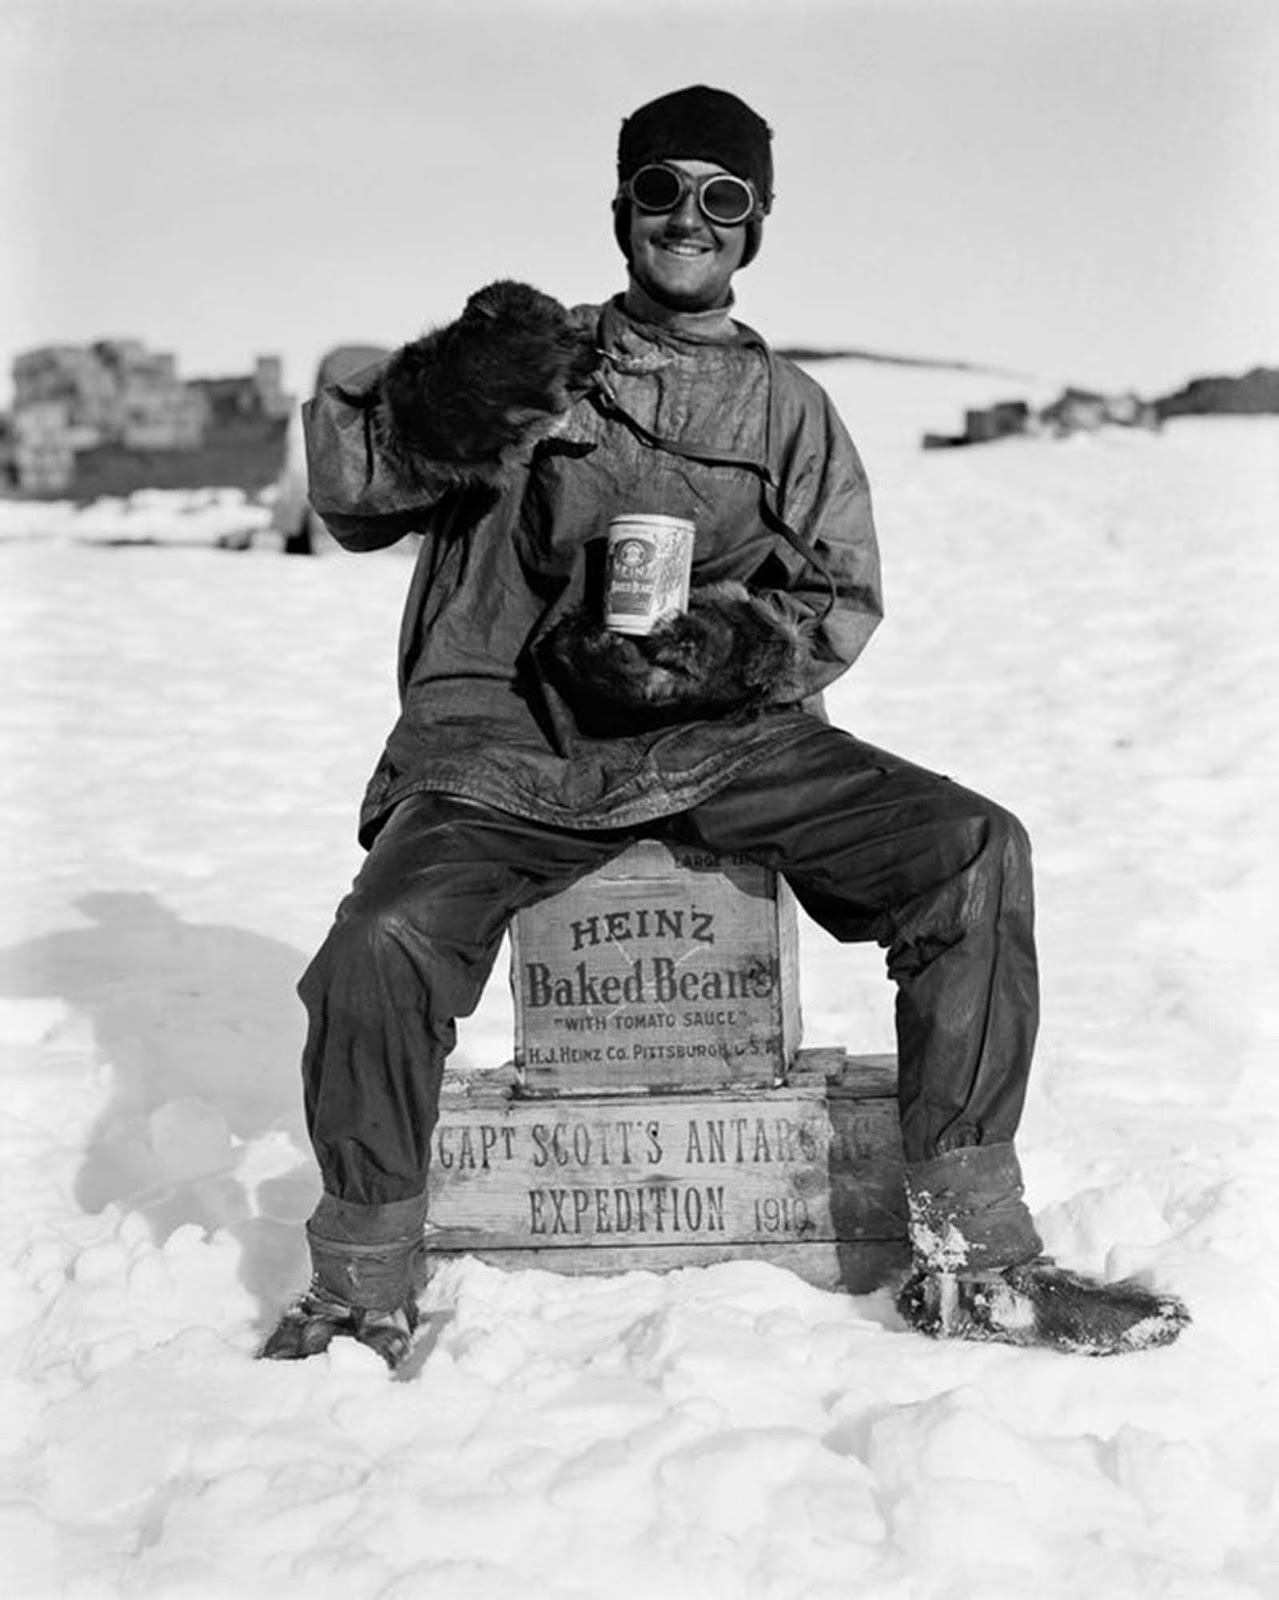 An expedition member enjoys a can of beans at camp. January, 1912.